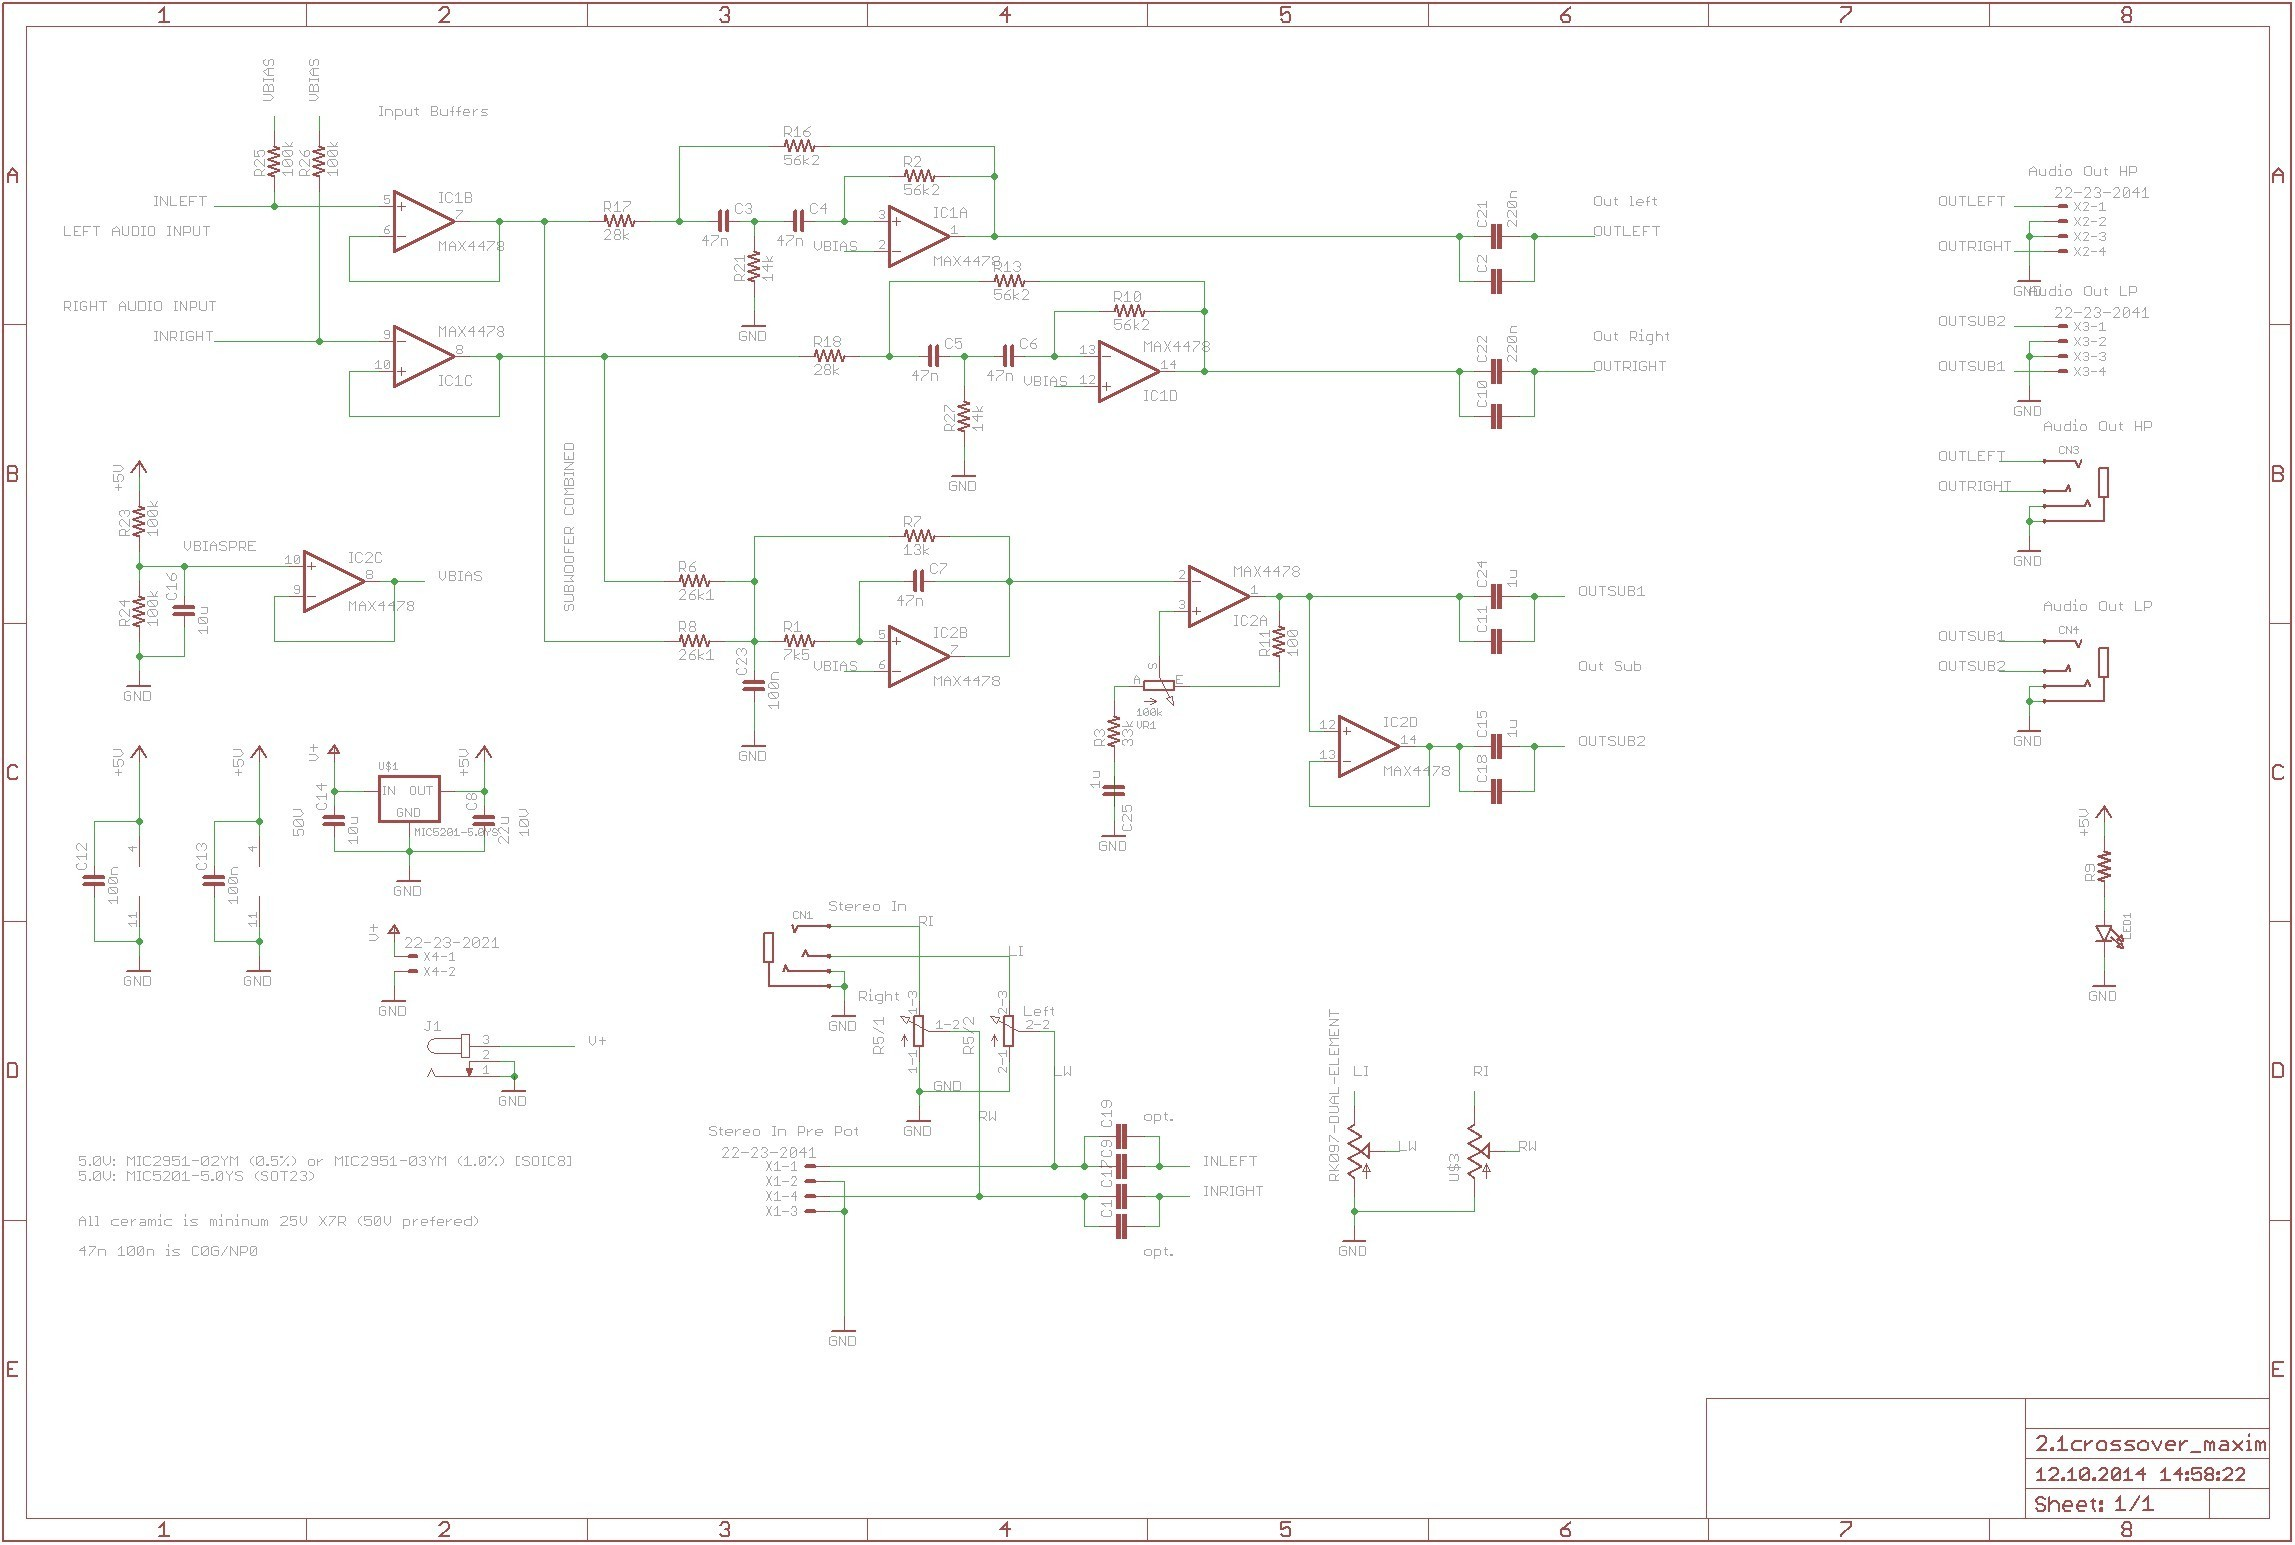 clarion vrx755vd wiring diagram wiring diagram image Clarion M109 Wiring  Harness at Clarion Vrx755vd Wiring Harness